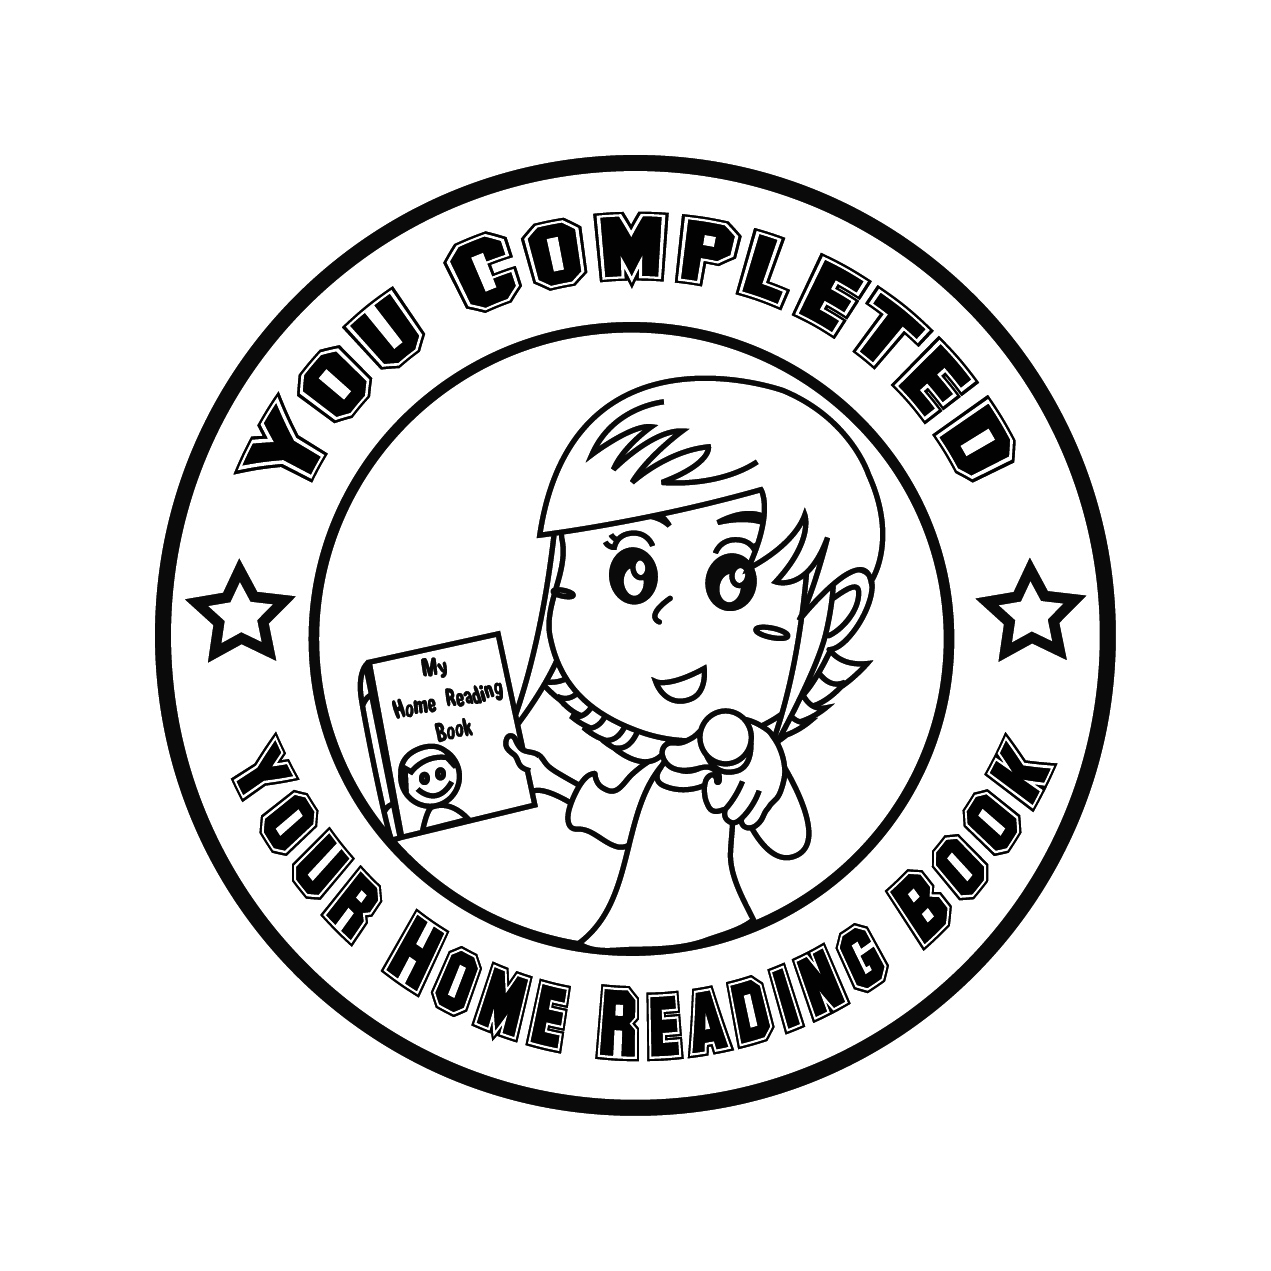 Home Reading Stamp V2